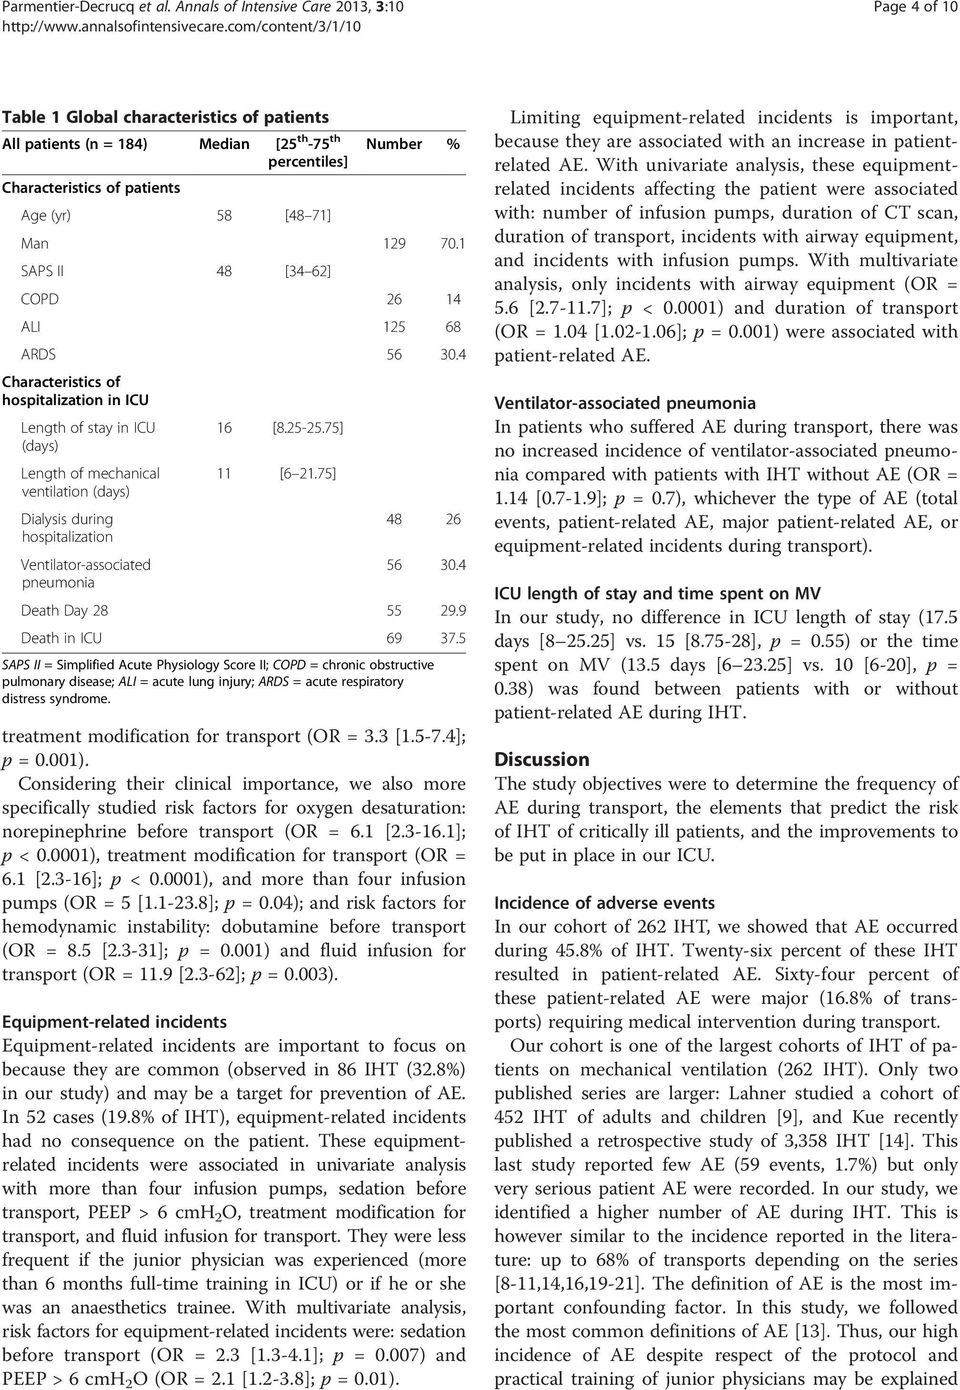 [48 71] Man 129 70.1 SAPS II 48 [34 62] COPD 26 14 ALI 125 68 ARDS 56 30.4 Characteristics of hospitalization in ICU Length of stay in ICU 16 [8.25-25.75] (days) Length of mechanical 11 [6 21.